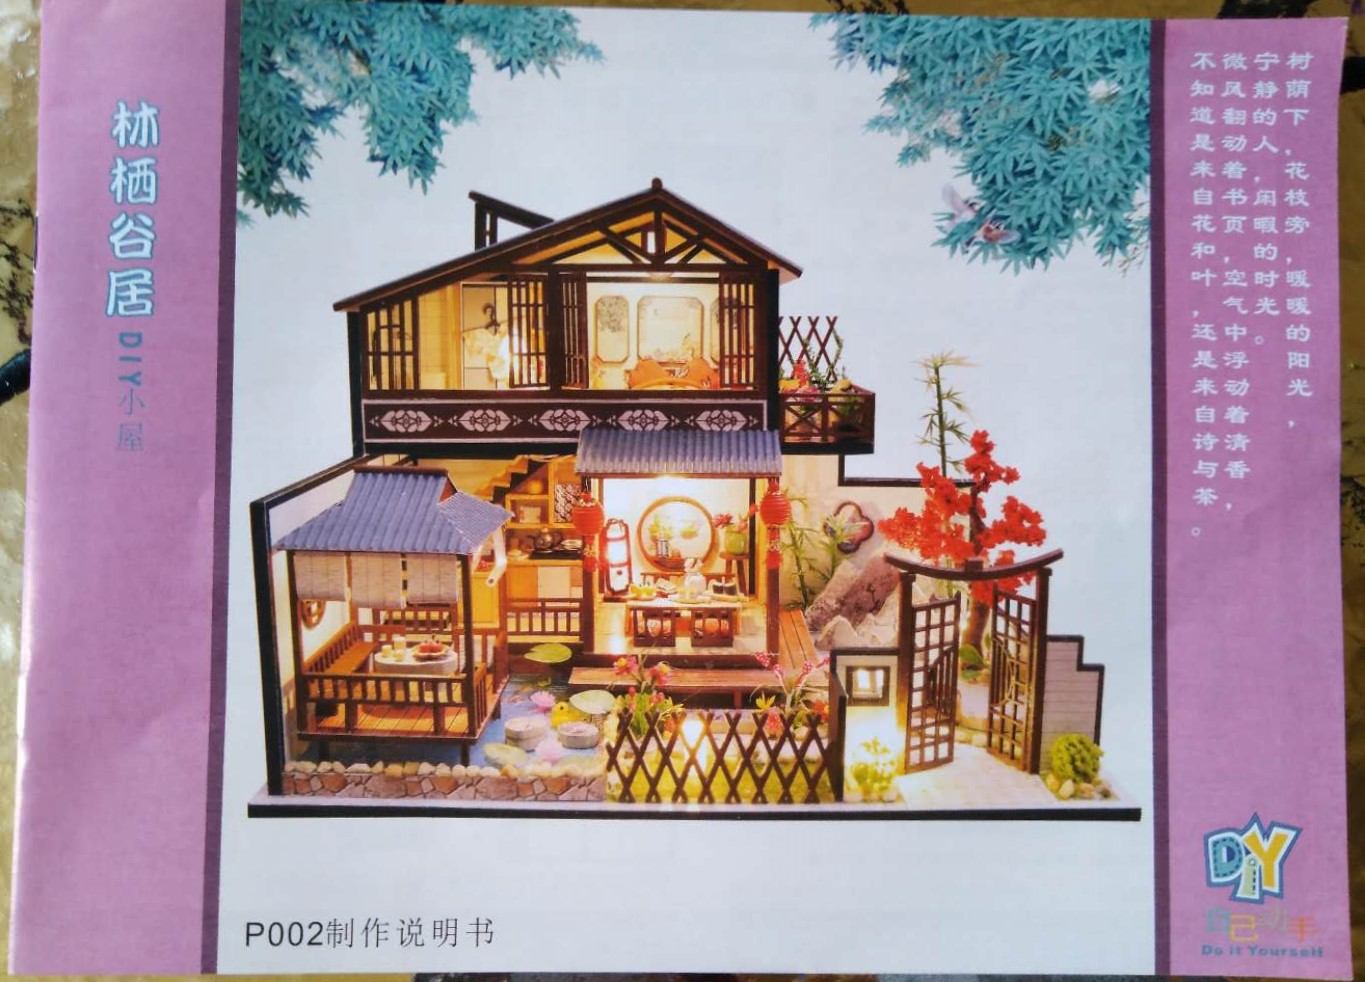 My 小家 small house